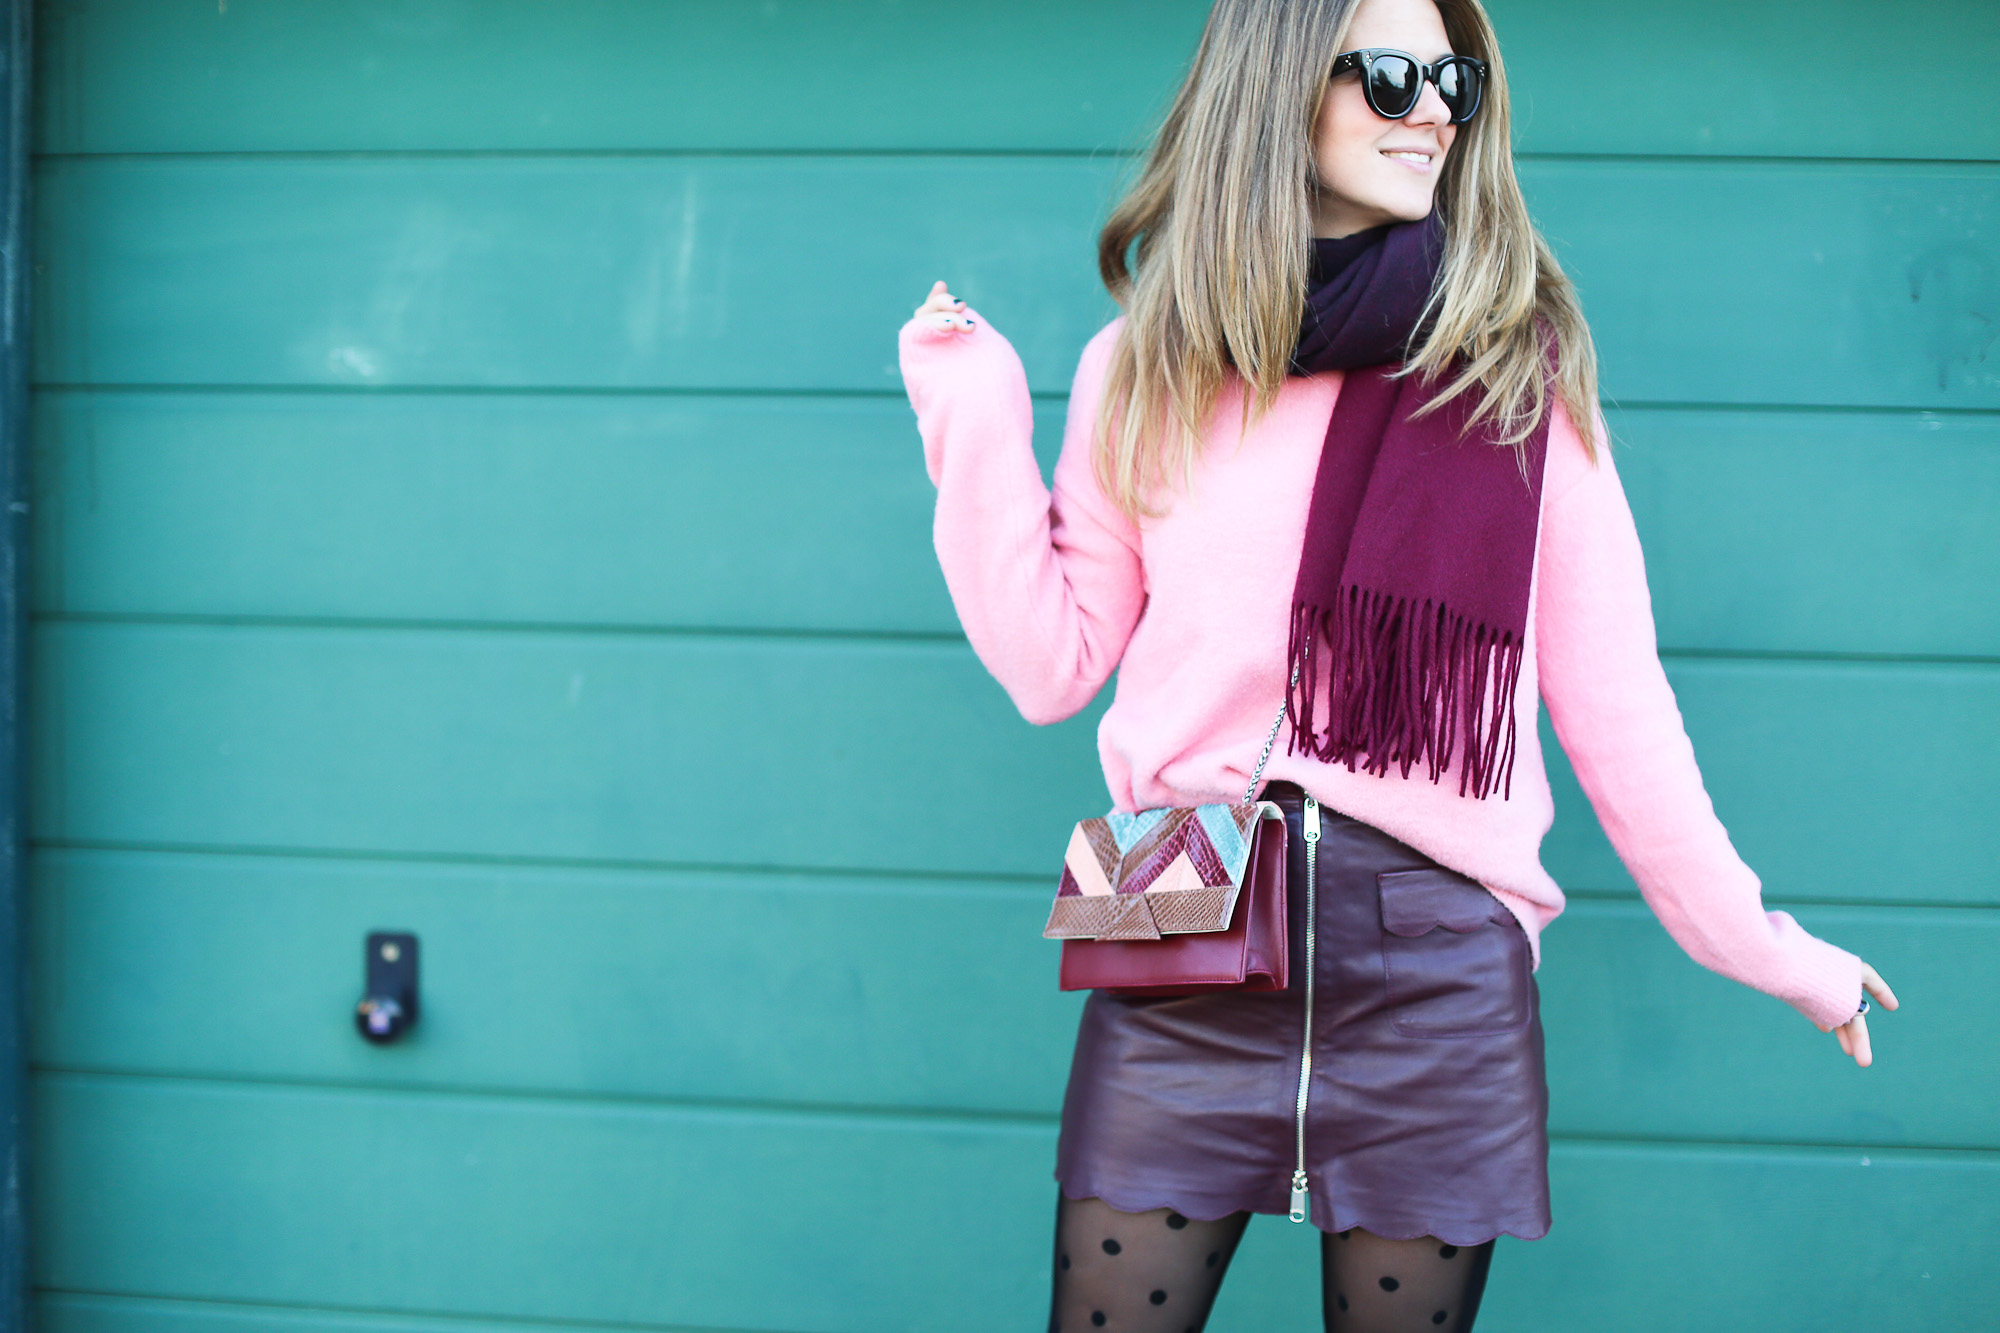 Clochet_streetstyle_fashionblogger_Max&Co_leatherminiskirt_andtherstories_pinksweater_celinesunglasses-4